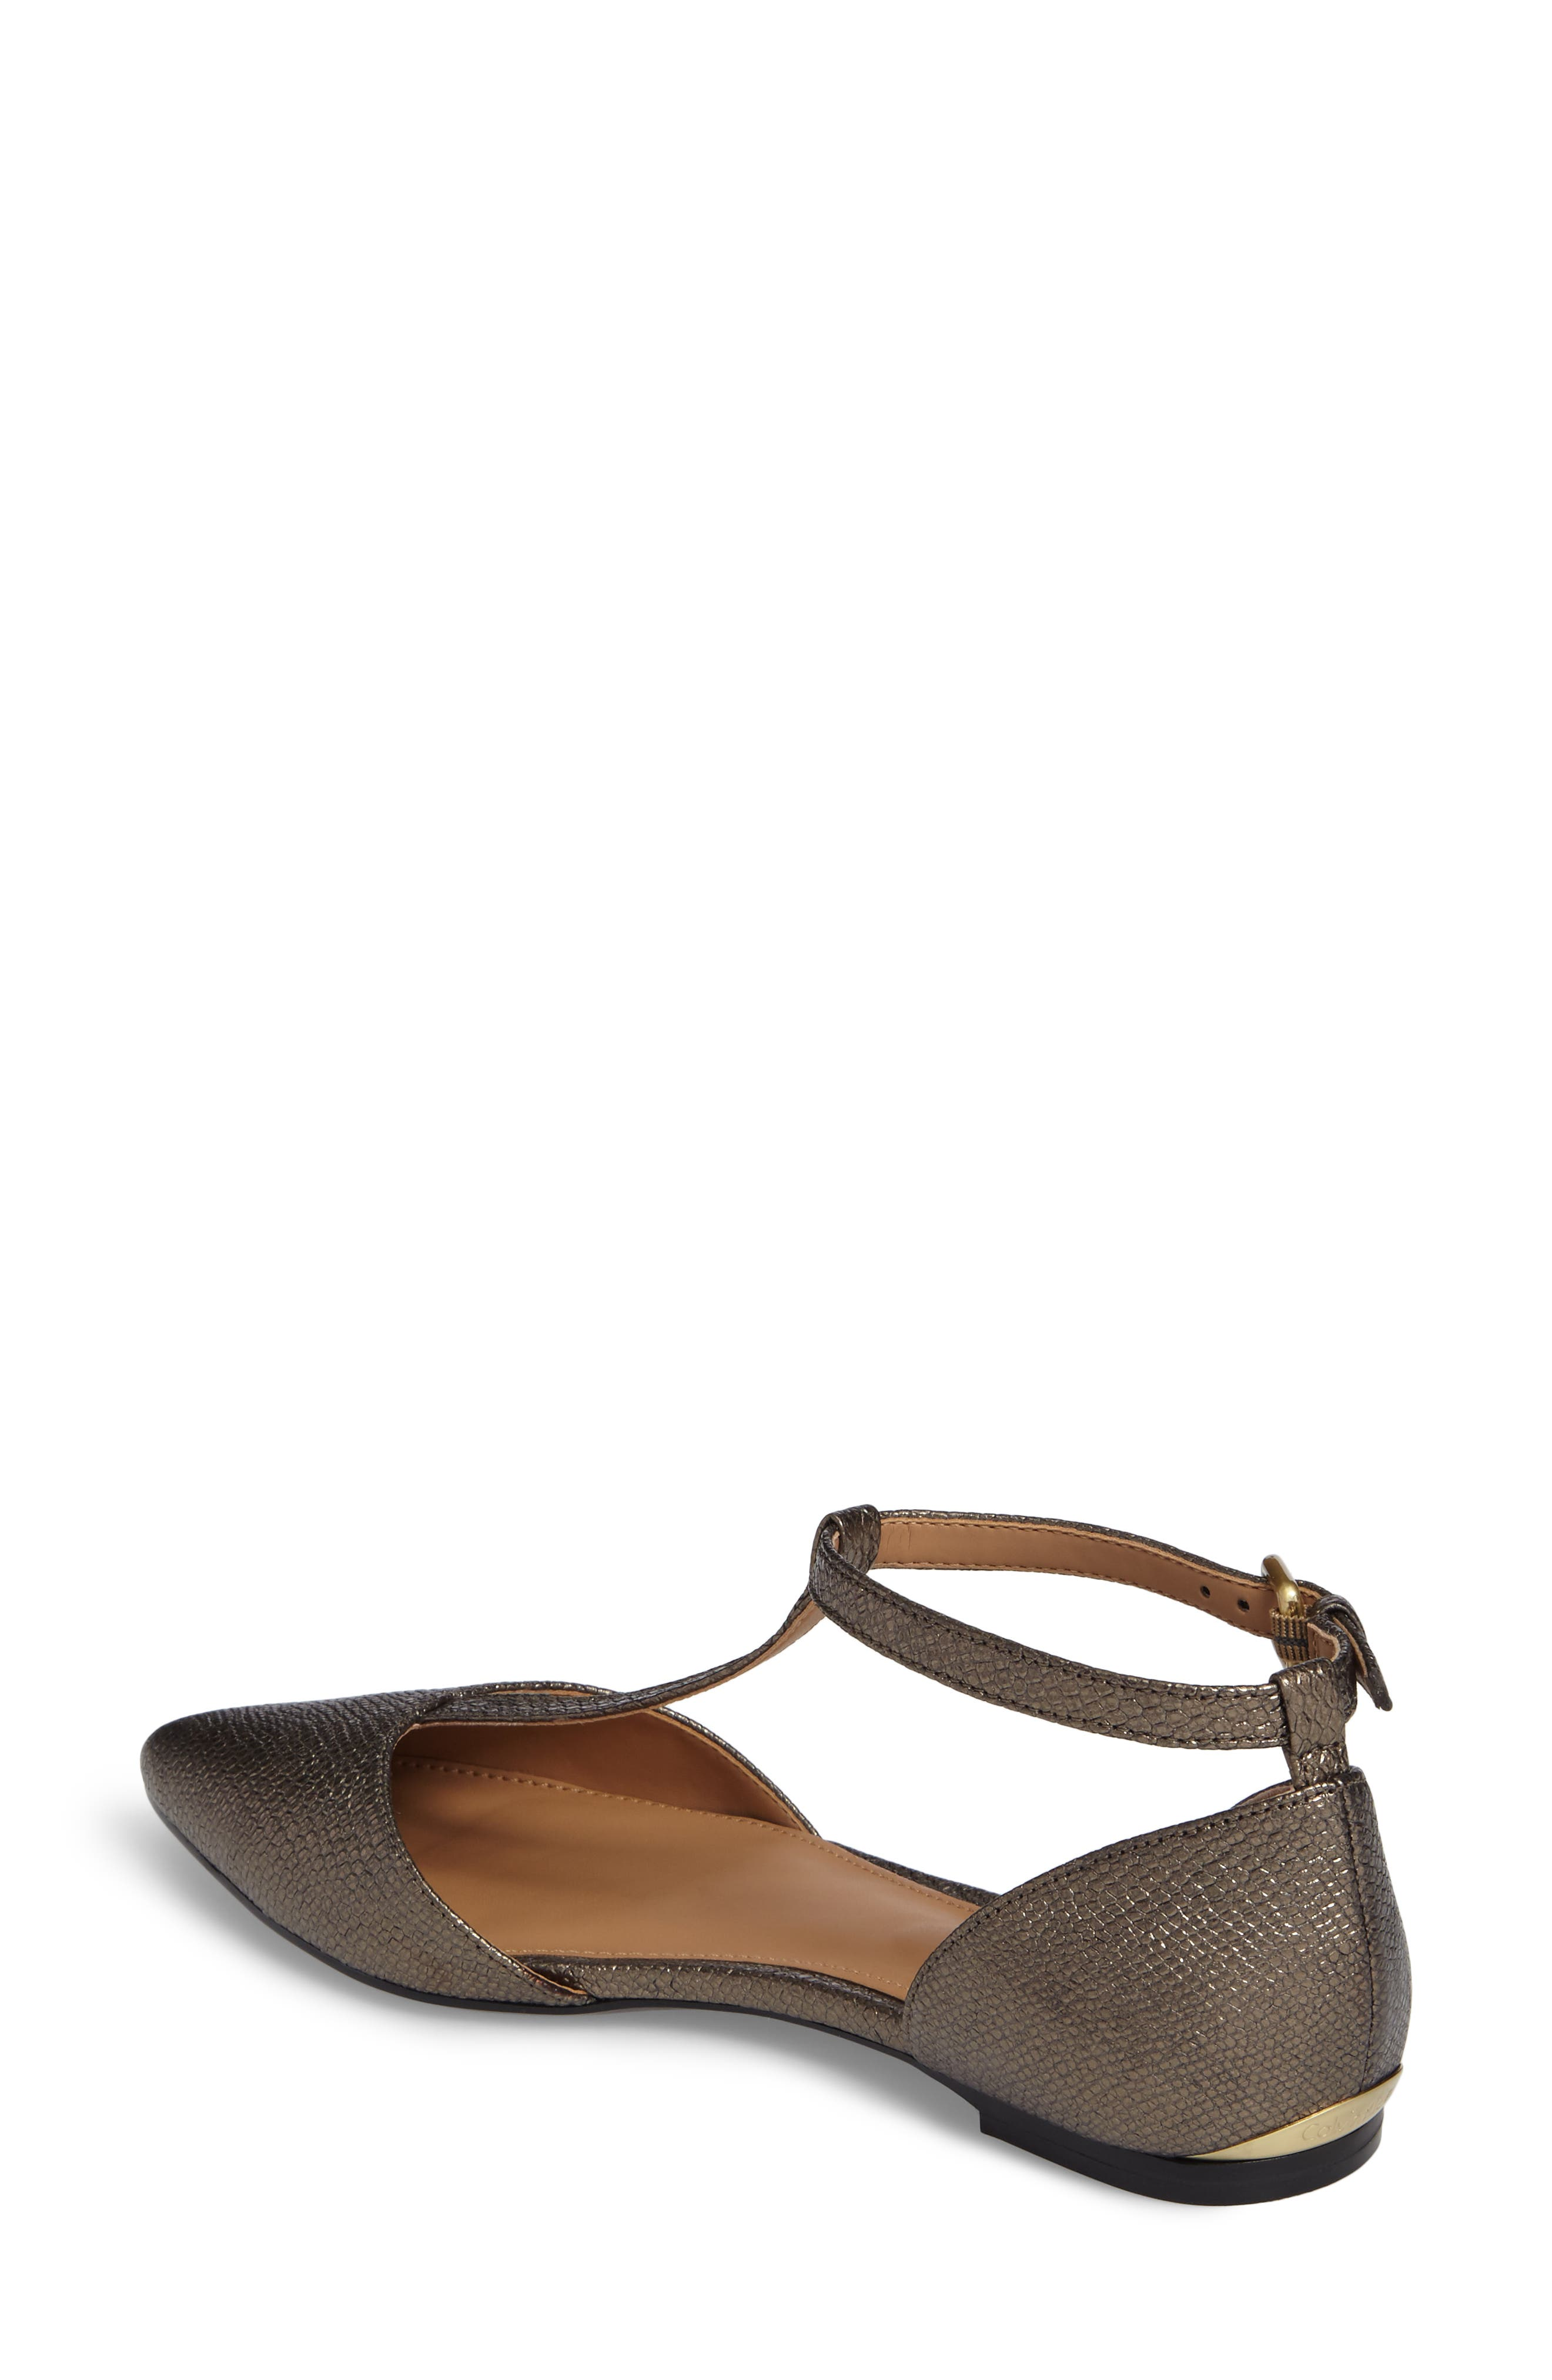 'Ghita' T-Strap Flat,                             Alternate thumbnail 2, color,                             Gold Foiled Leather